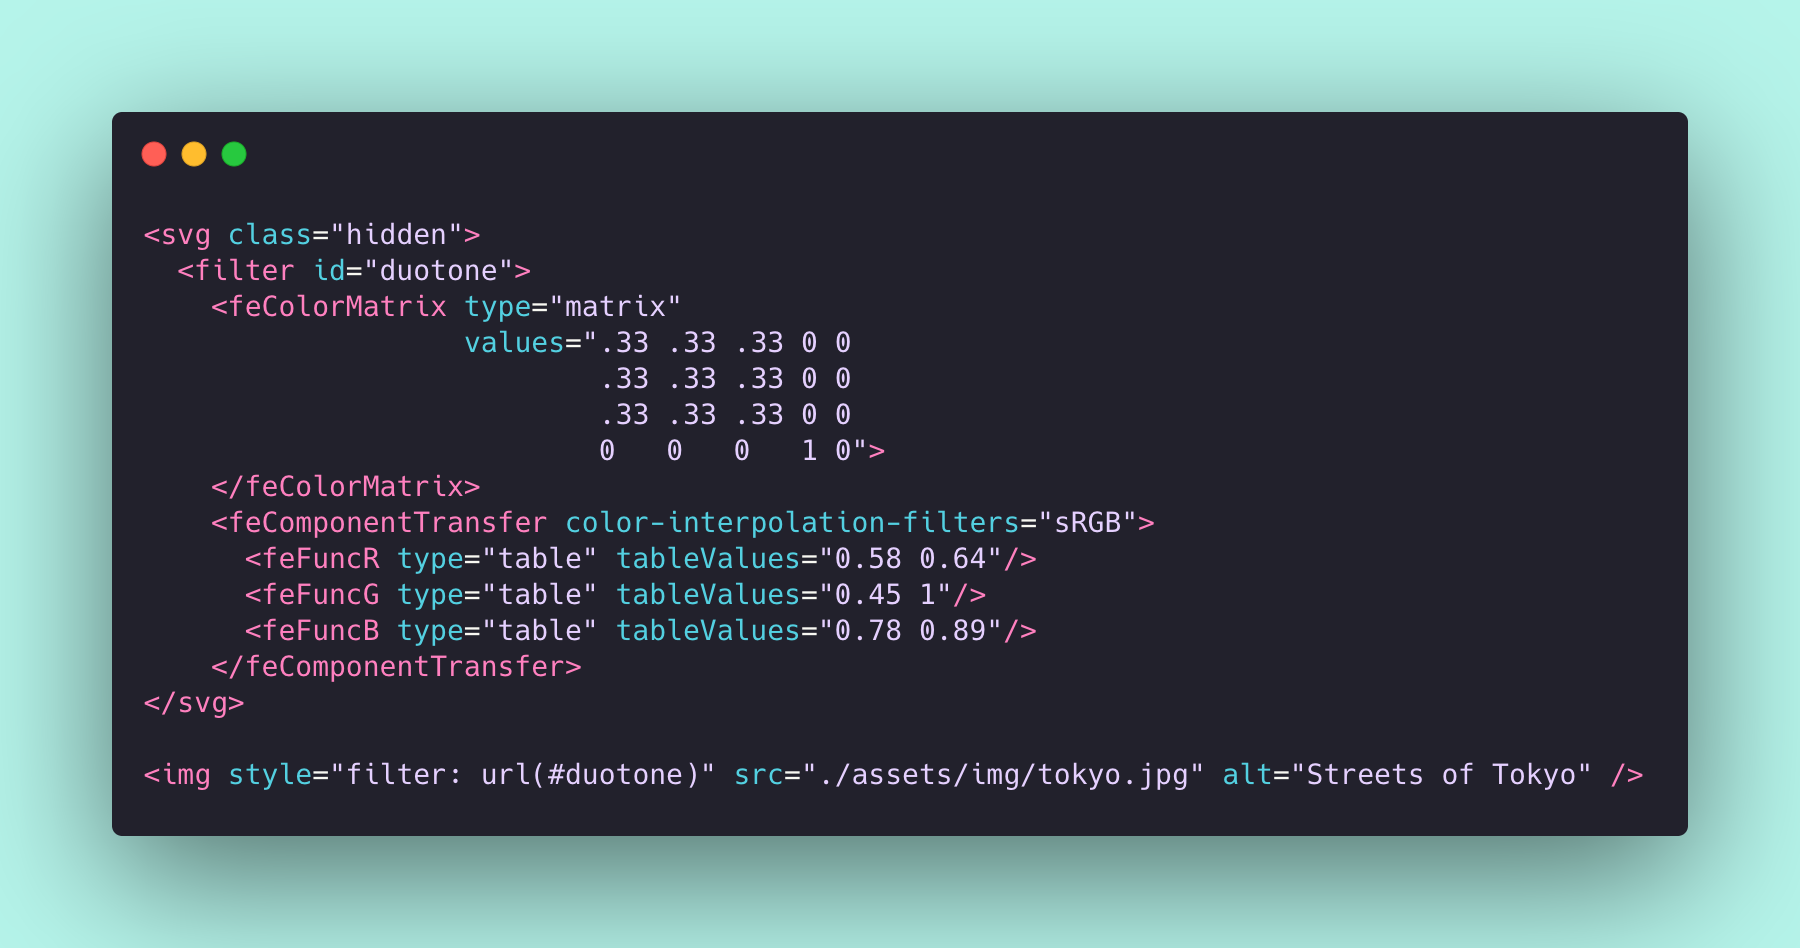 a screengrab of code. View the link above to see it in action